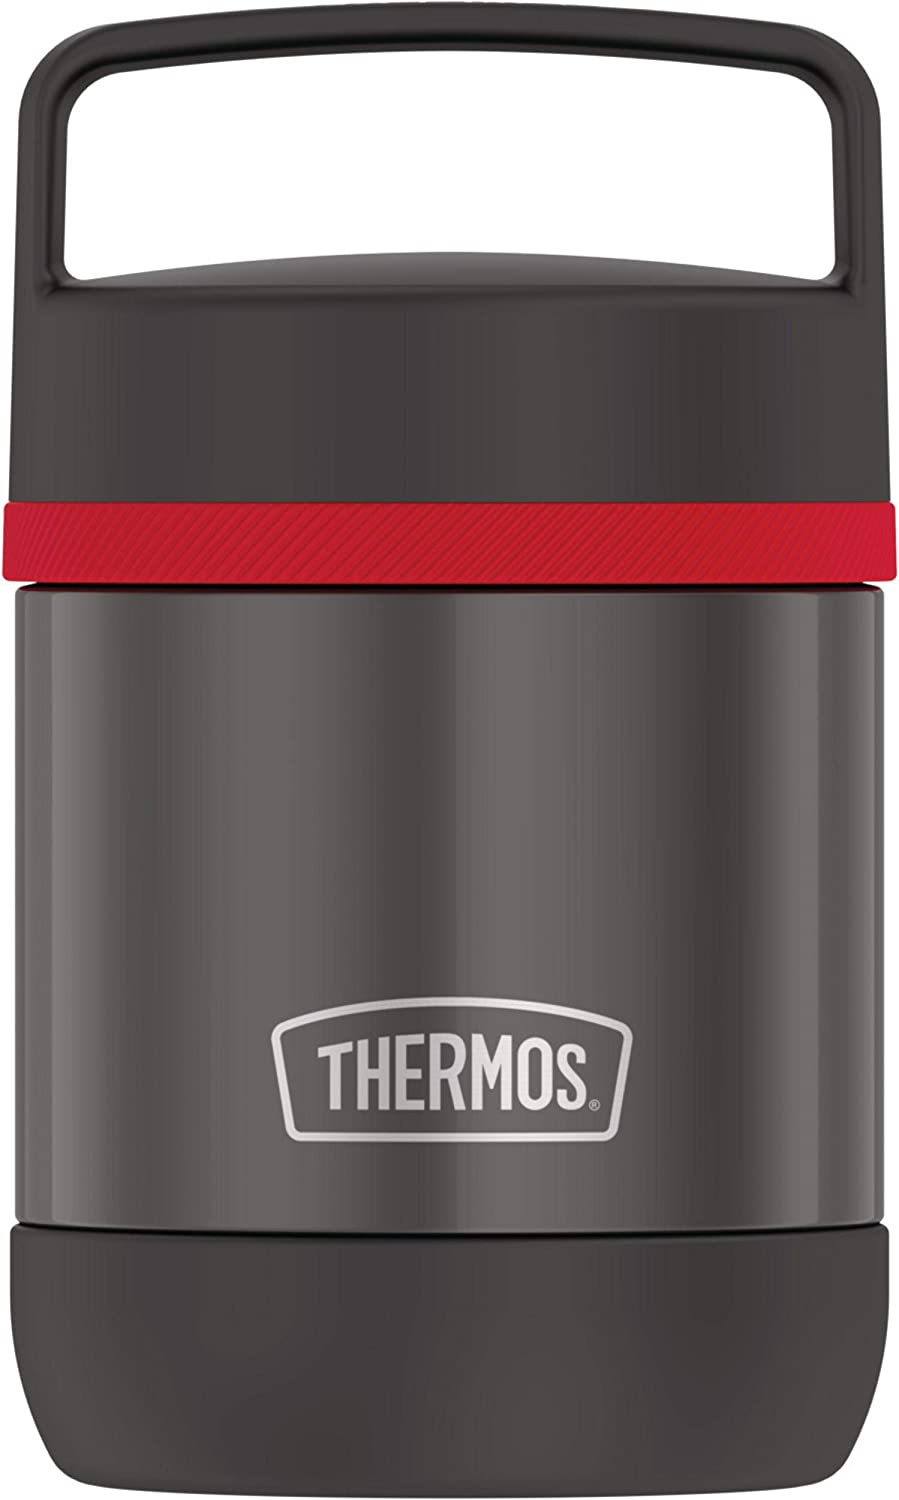 Thermos Stainless Steel Vacuum 10 Ounce handle, Black Insulated Food Jar, 10oz